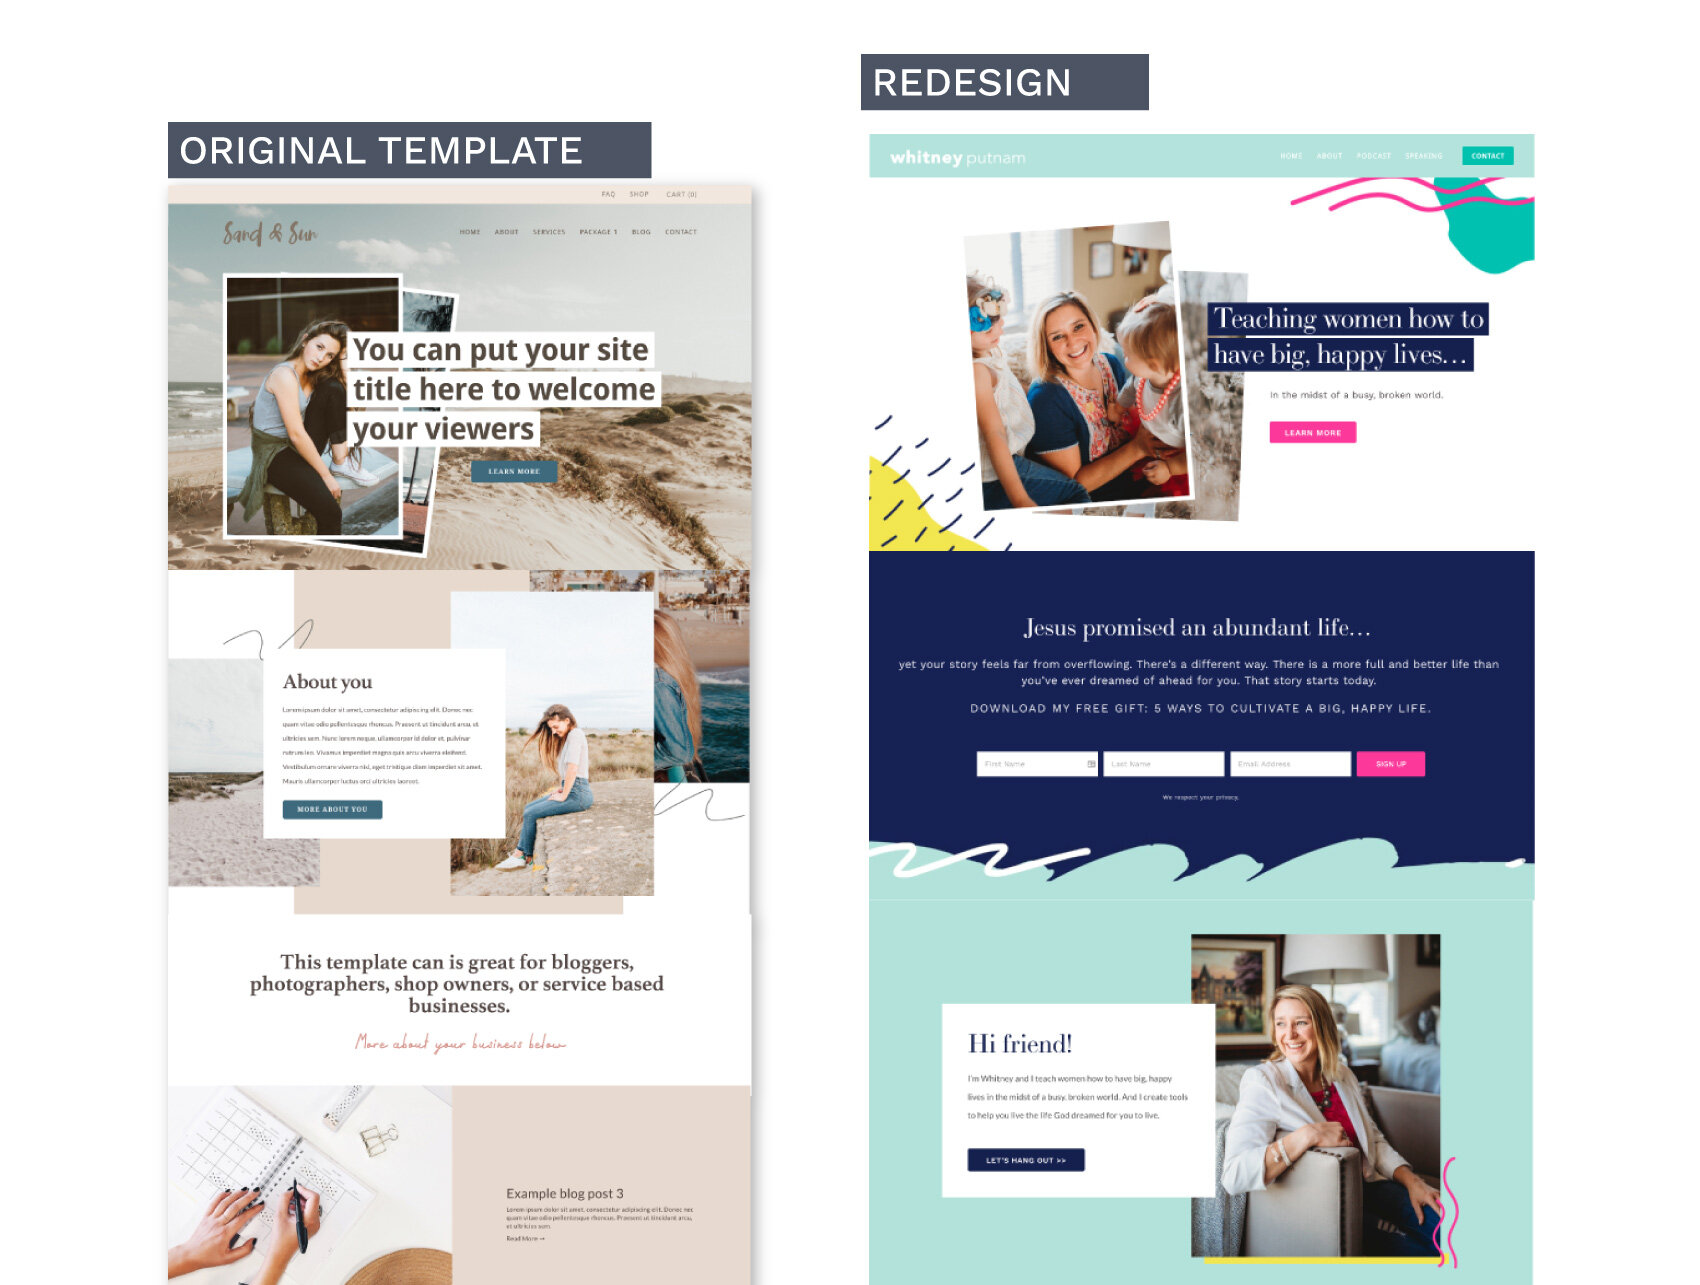 Template-redesign-example-1---whitney.jpg